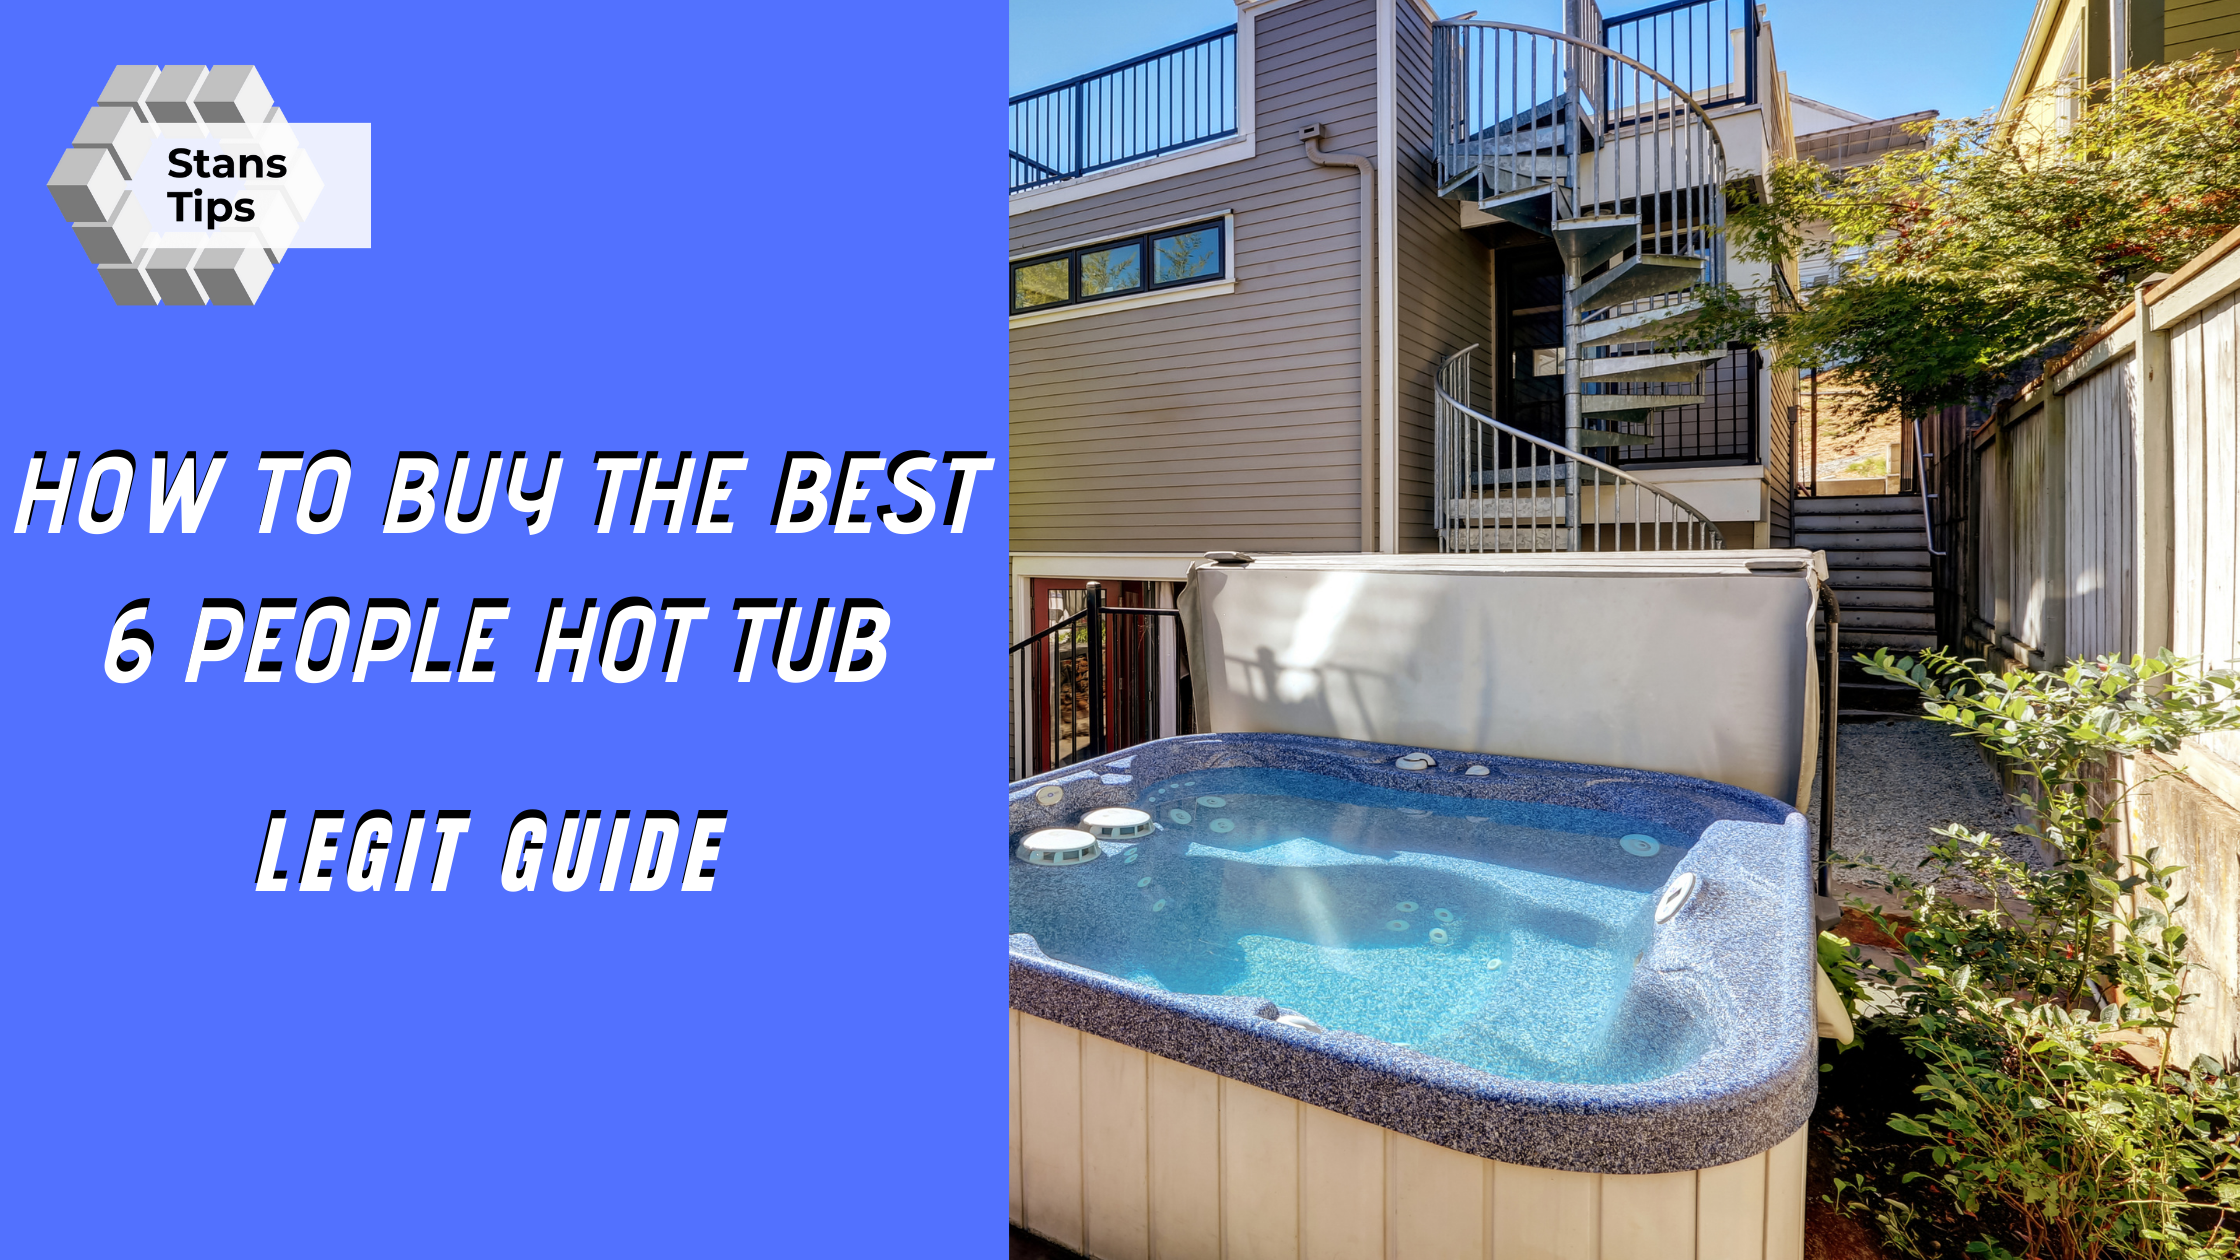 How to buy the best 6 people hot tub